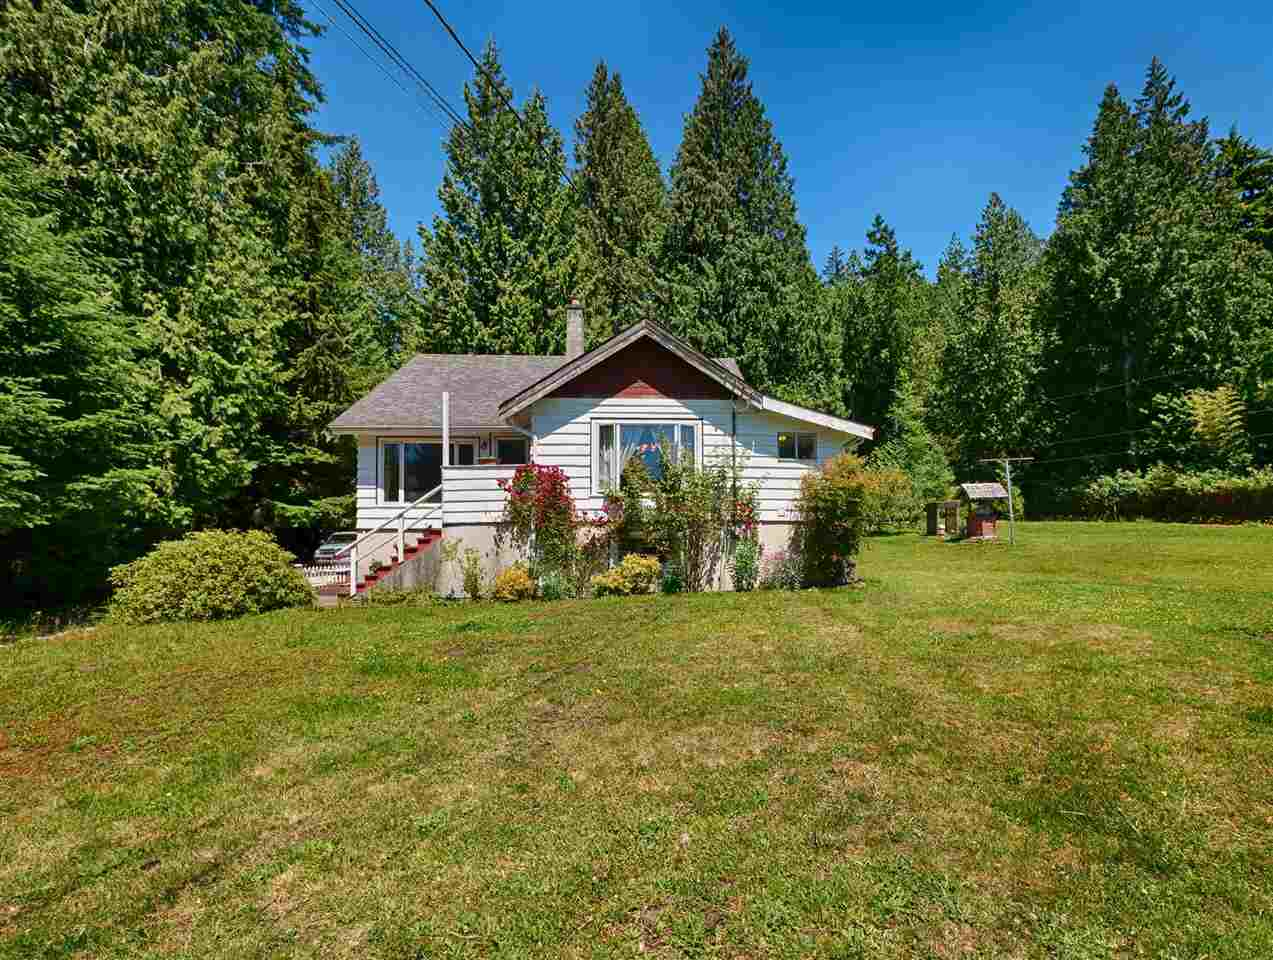 2706 SUNSHINE COAST HIGHWAY, Roberts Creek, BC V0N 2W3